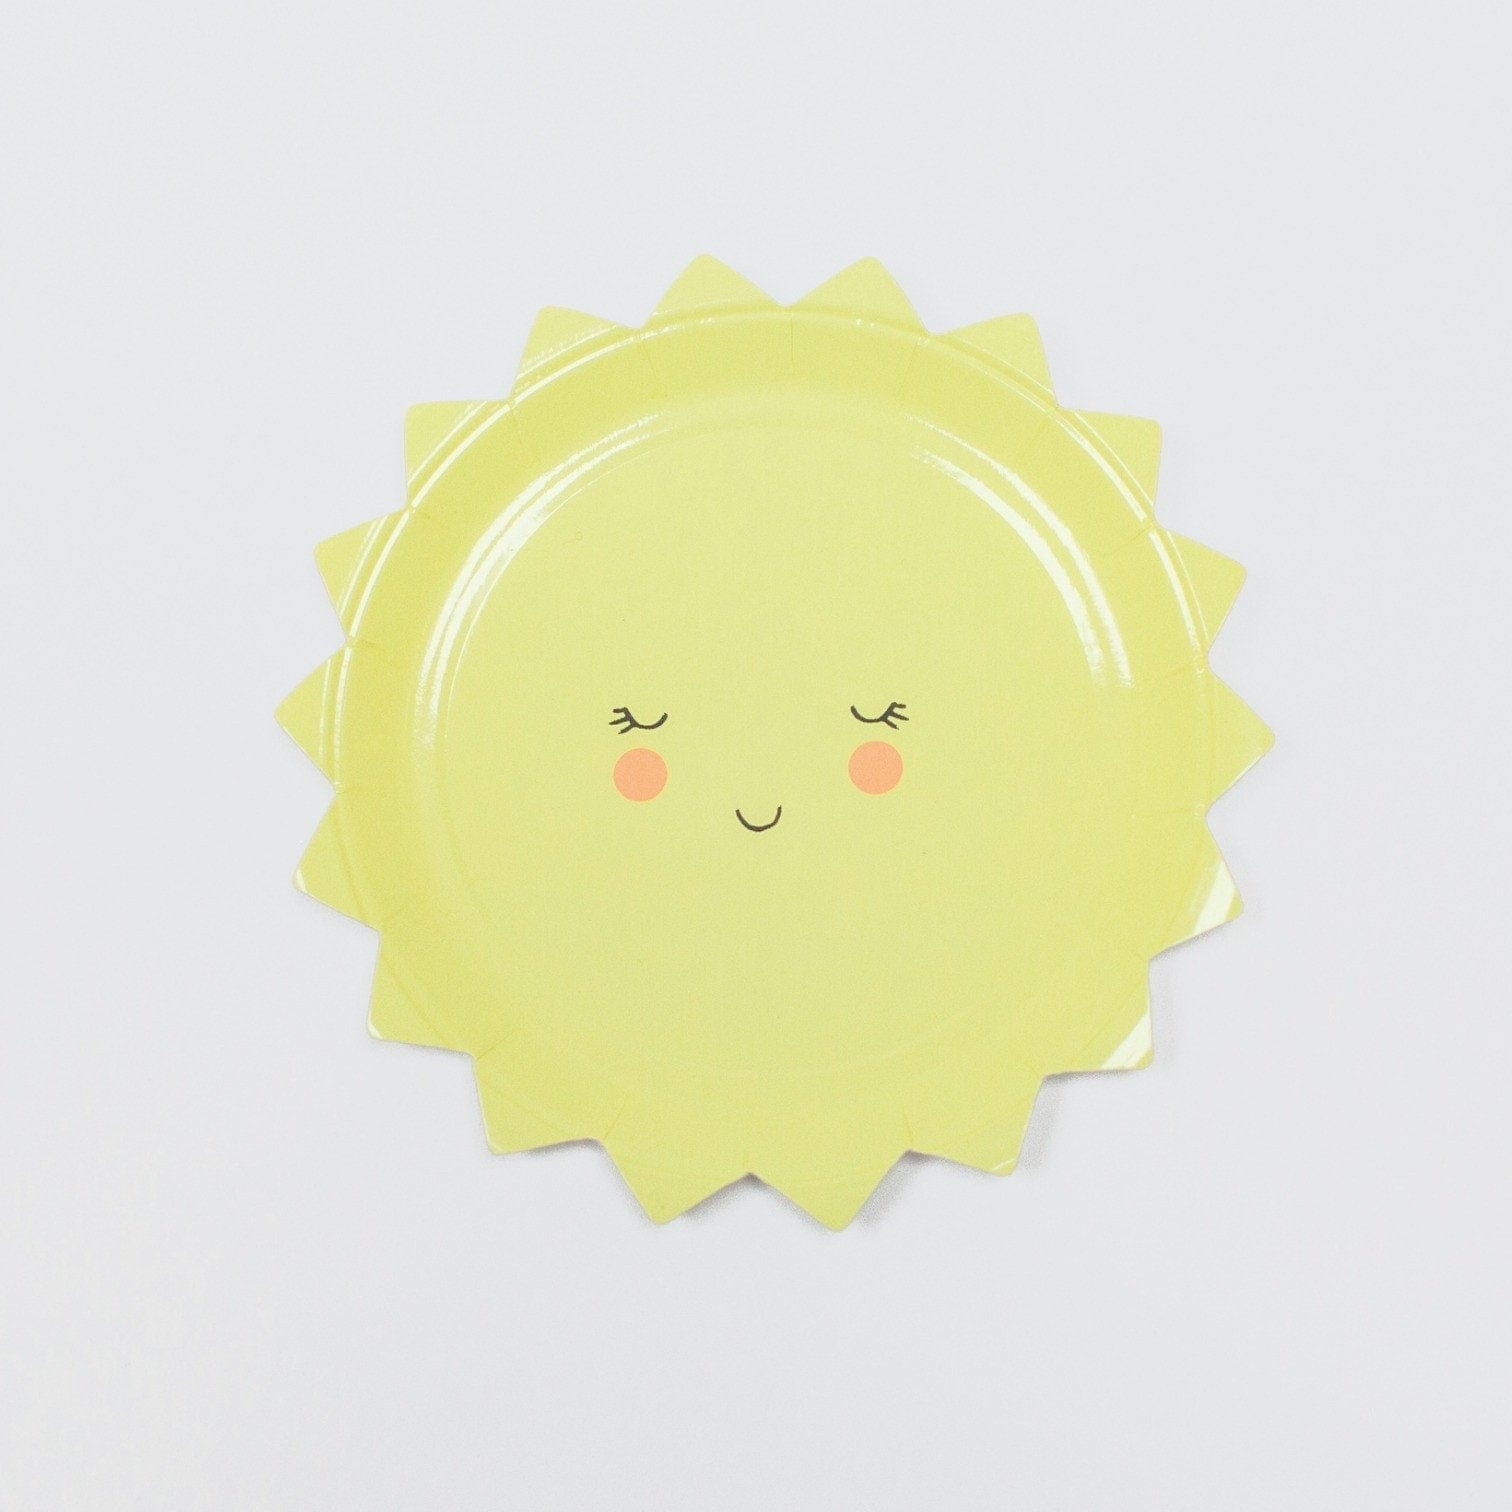 Cute Sun Party Plates Meri